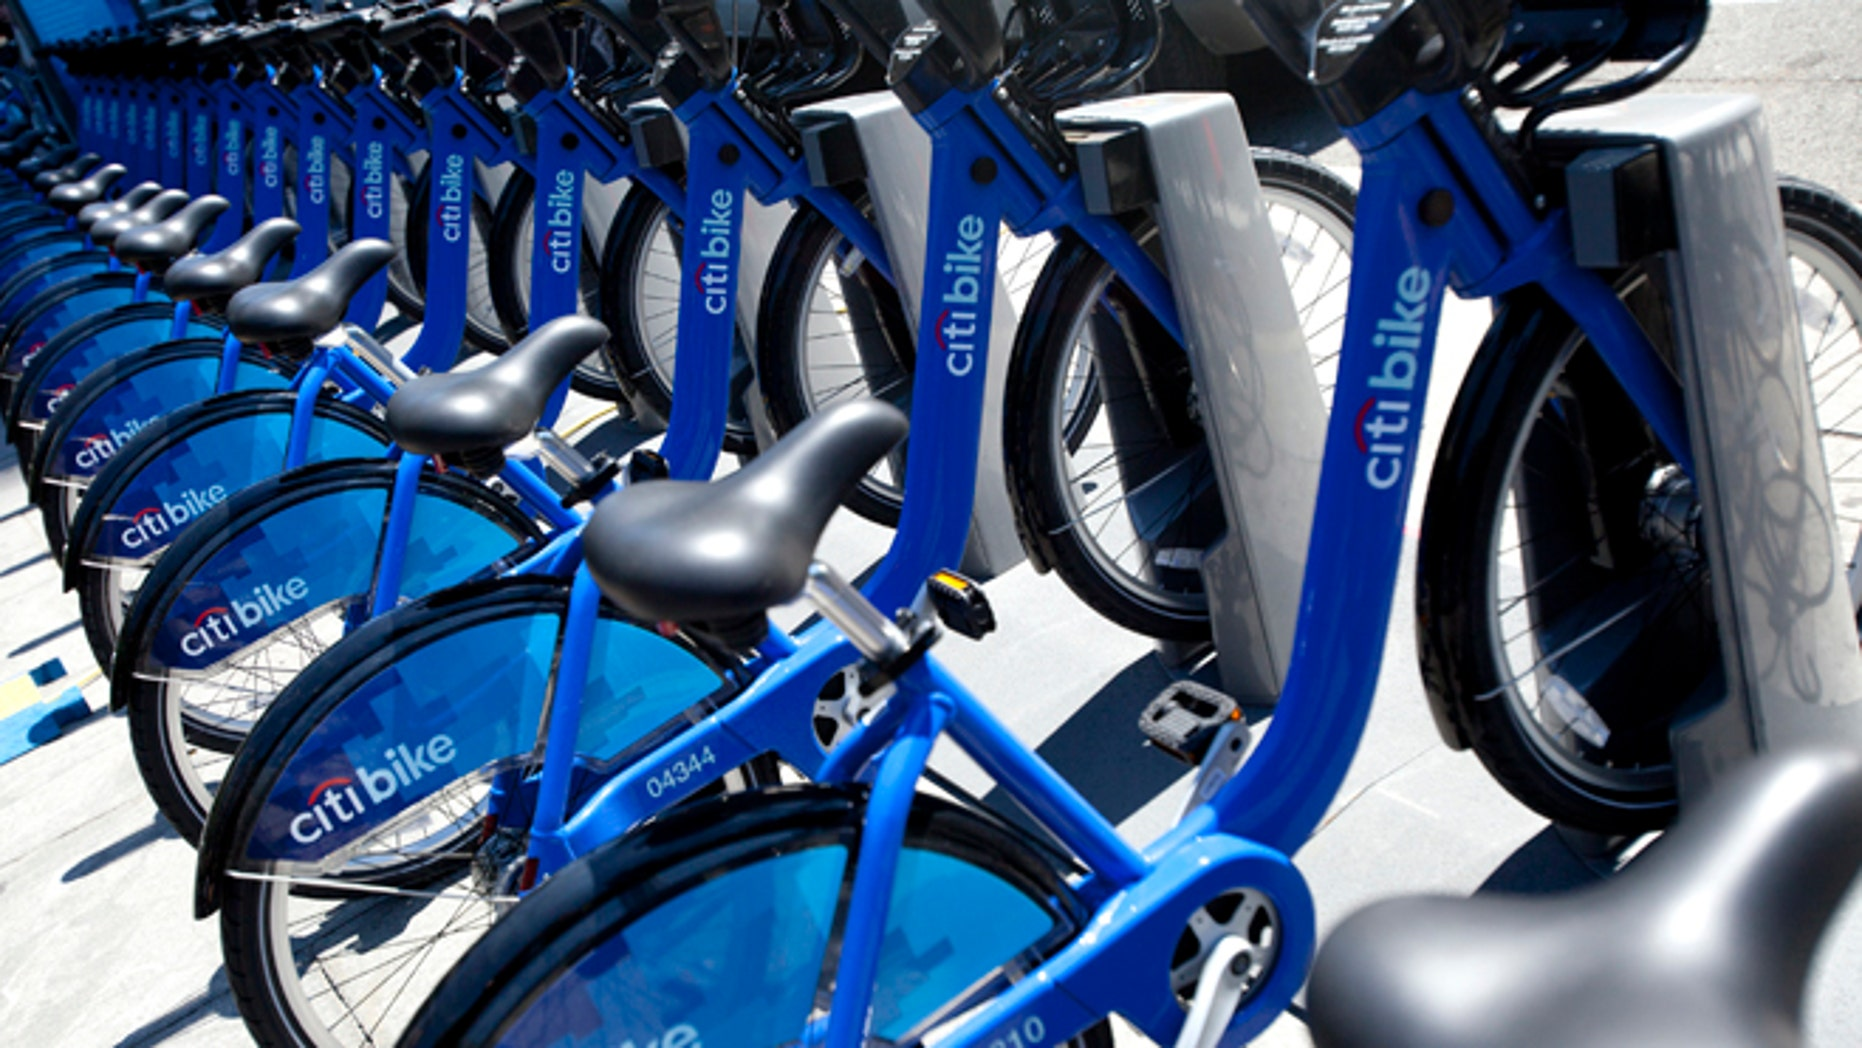 FILE: May 27, 2013: A rack of Citi Bike bicycles in New York City, N.Y.